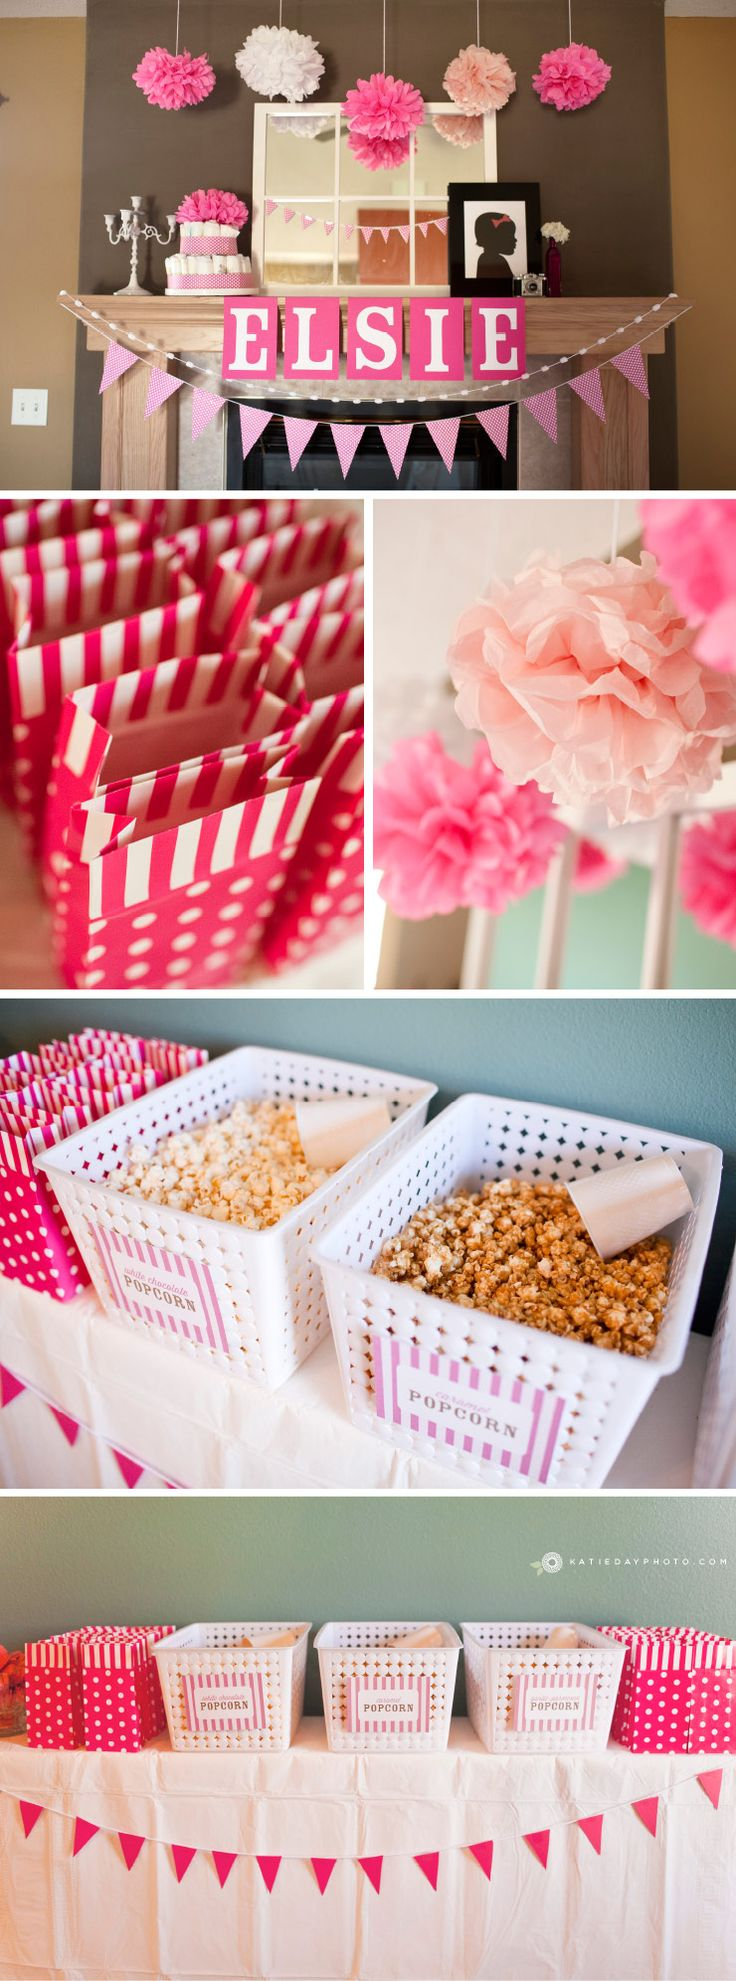 The perfect little girl baby shower hosted by my friend Katy!  Check out her blog... not only is she super creative but she is one of the best photographers I have ever seen!